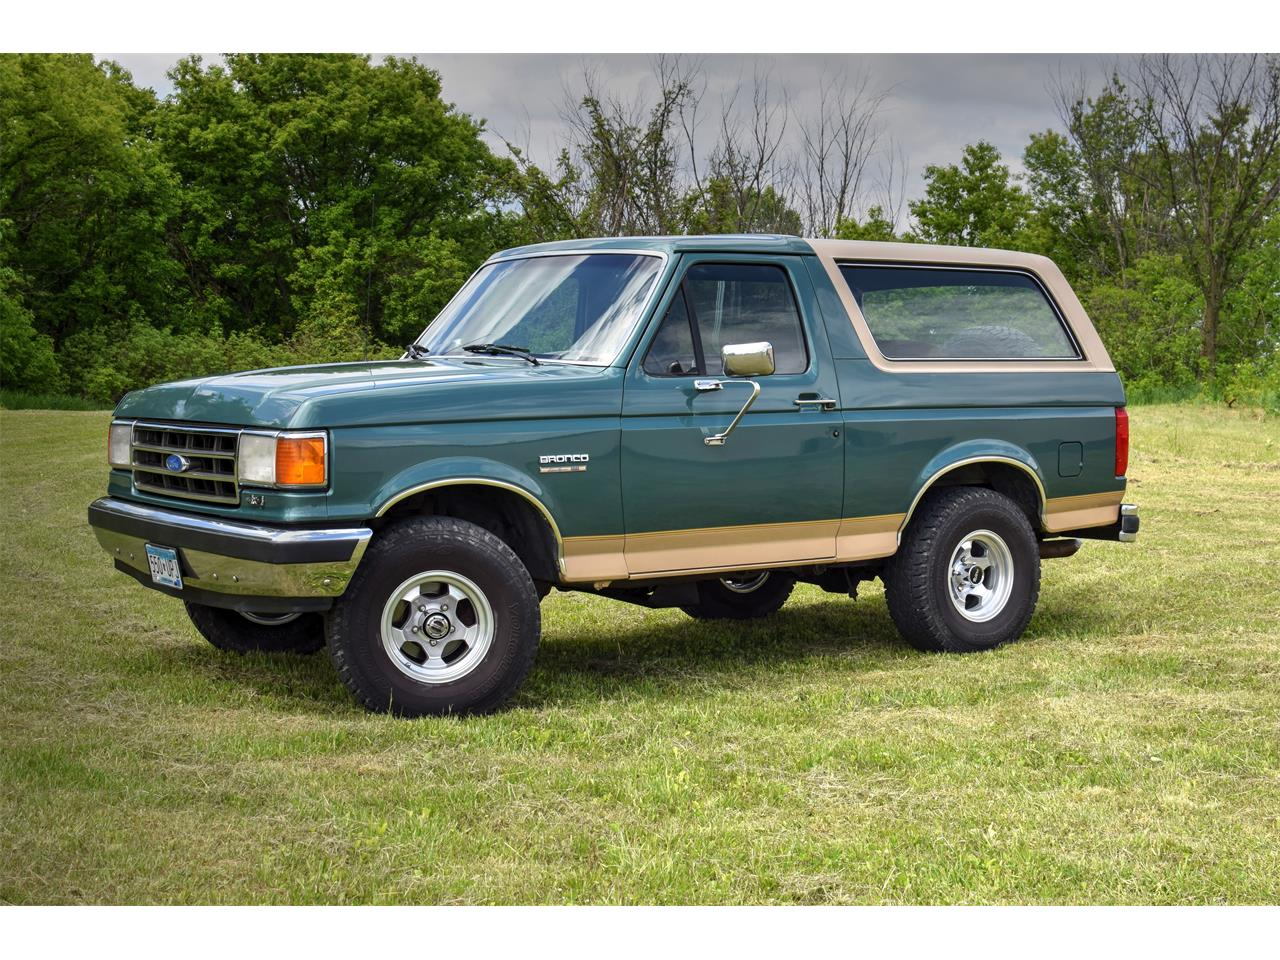 Large Picture of '98 Ford  Bronco located in Watertown Minnesota - $22,500.00 Offered by Hooked On Classics - L5VG